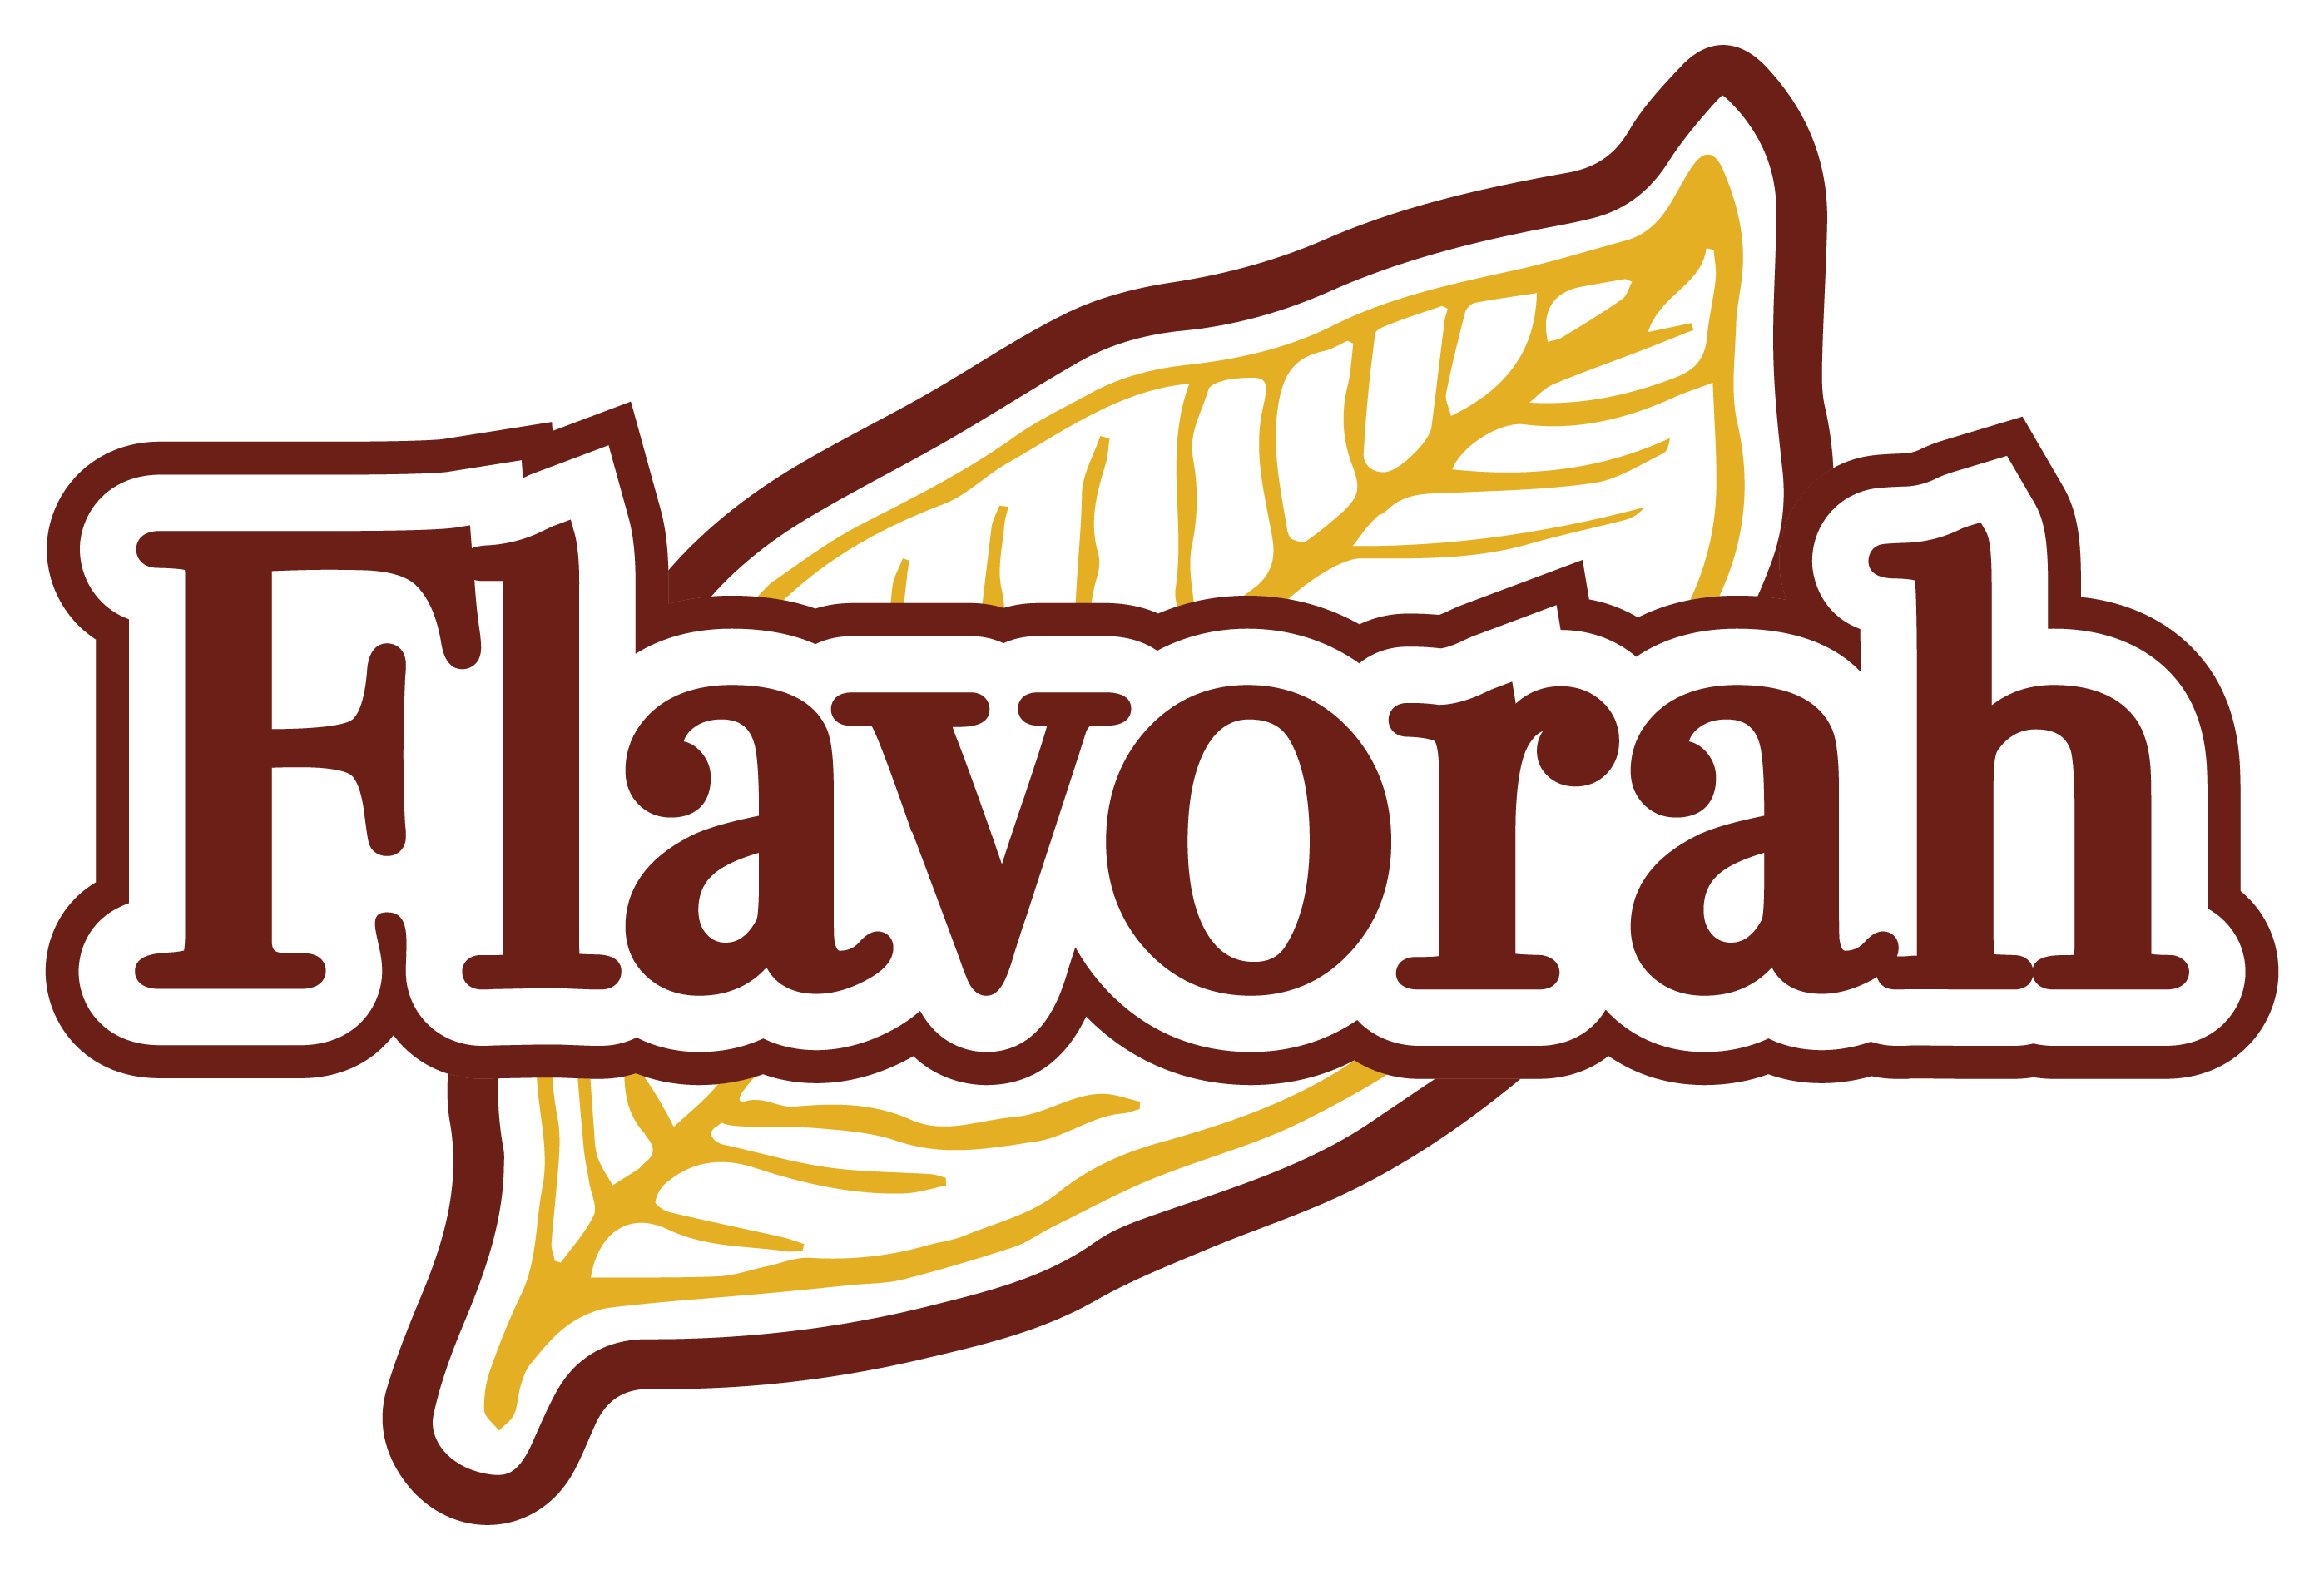 Flavorah Coupons